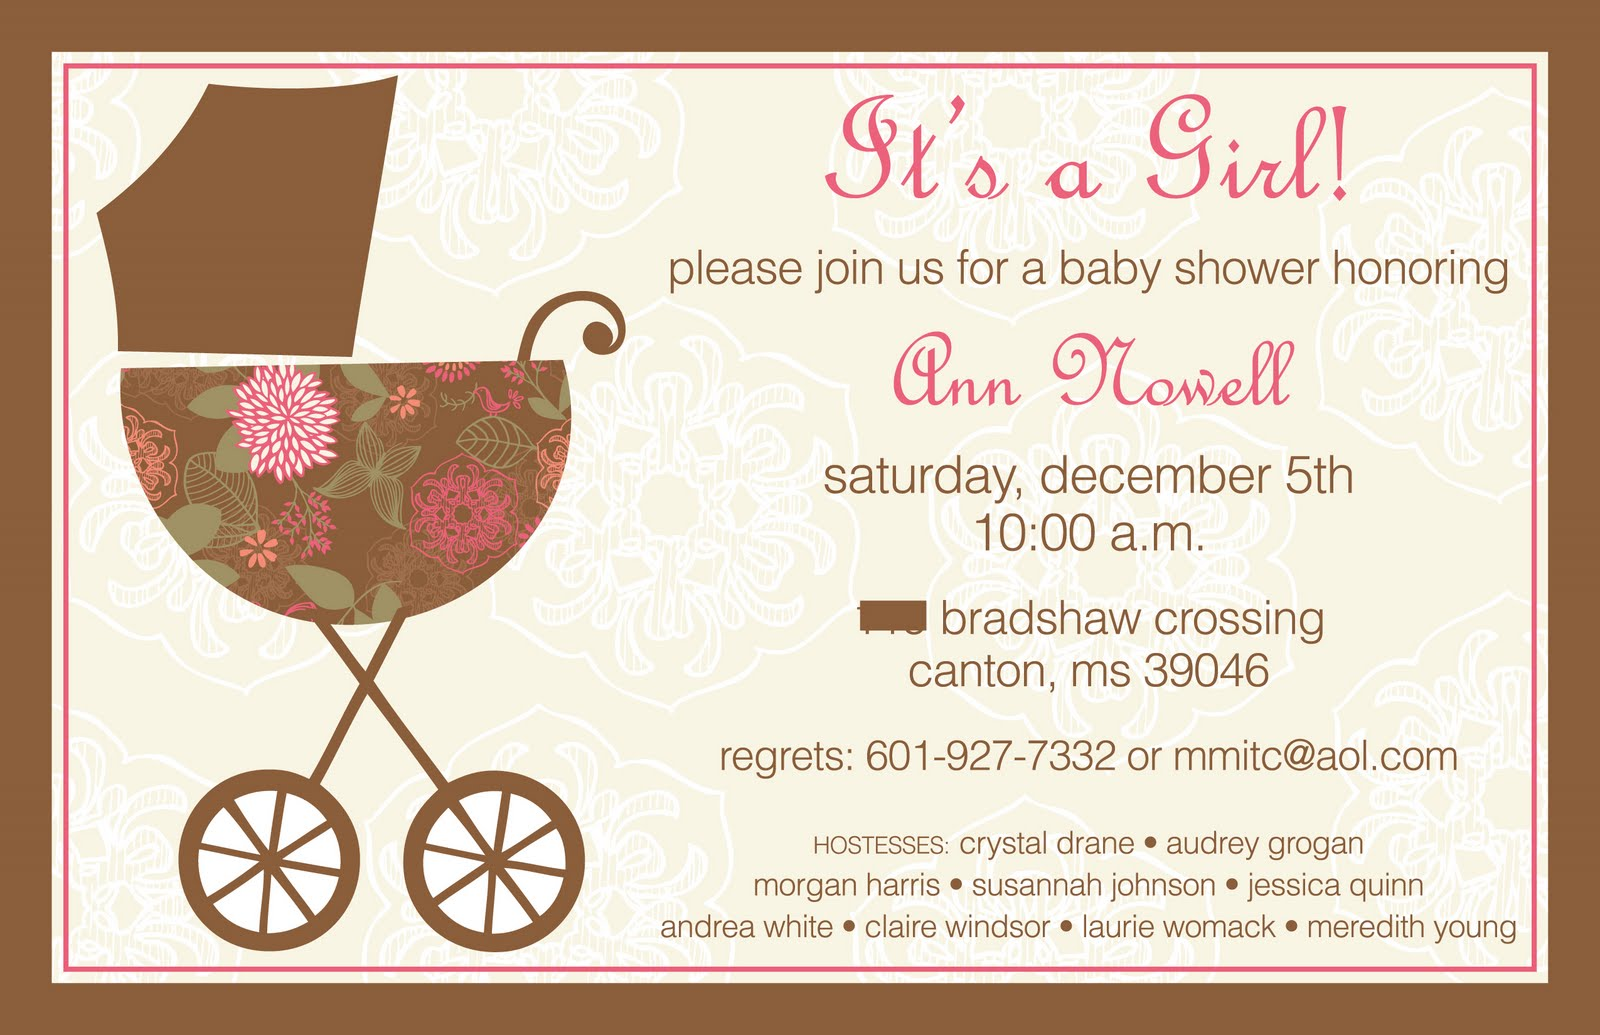 M. Young Designs: Pink and Brown Baby Shower Invitation